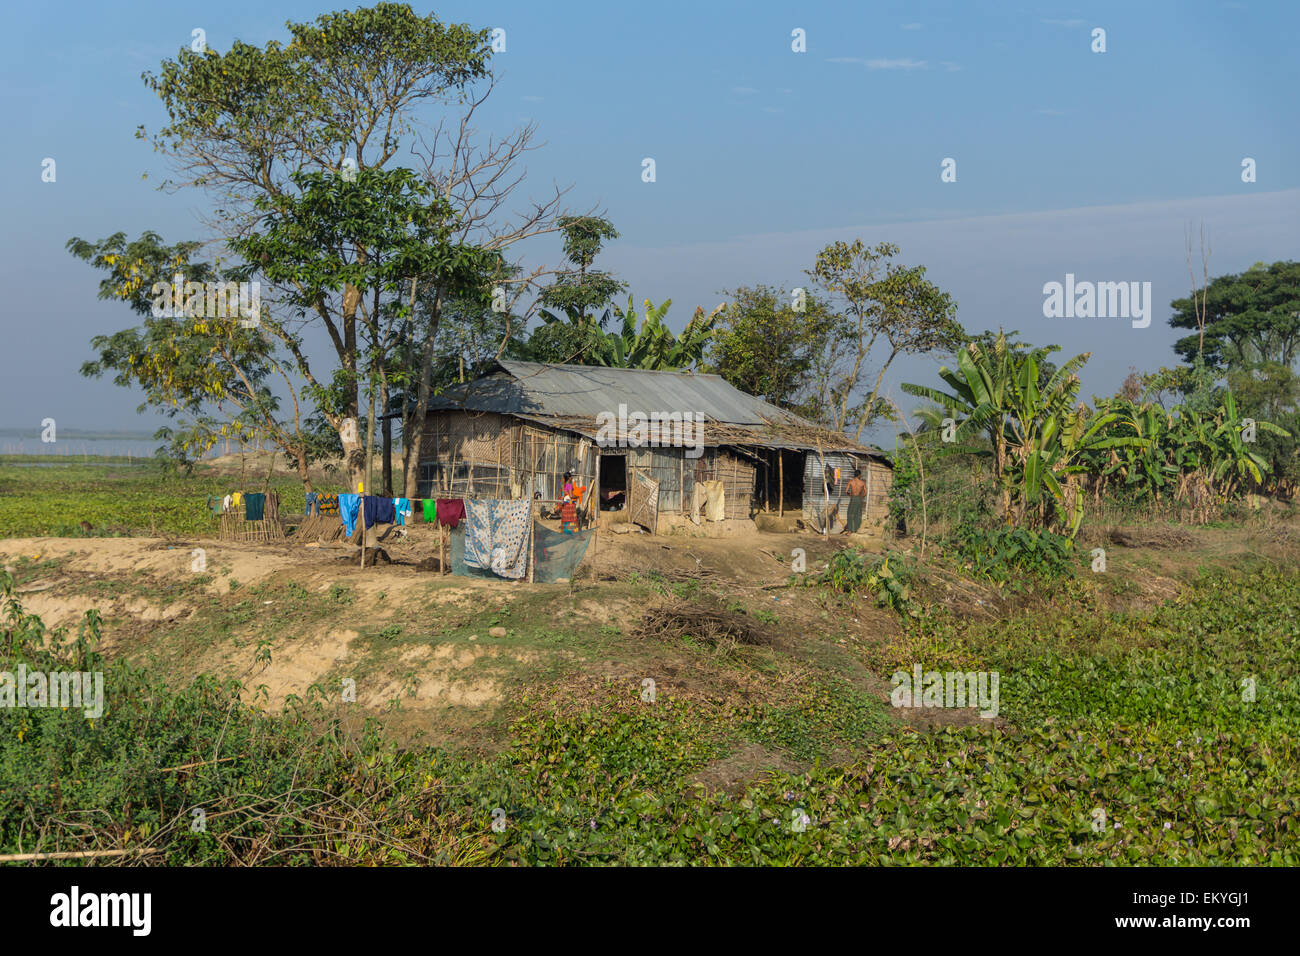 Village house in bangladesh stock photo royalty free for Bangladesh house picture